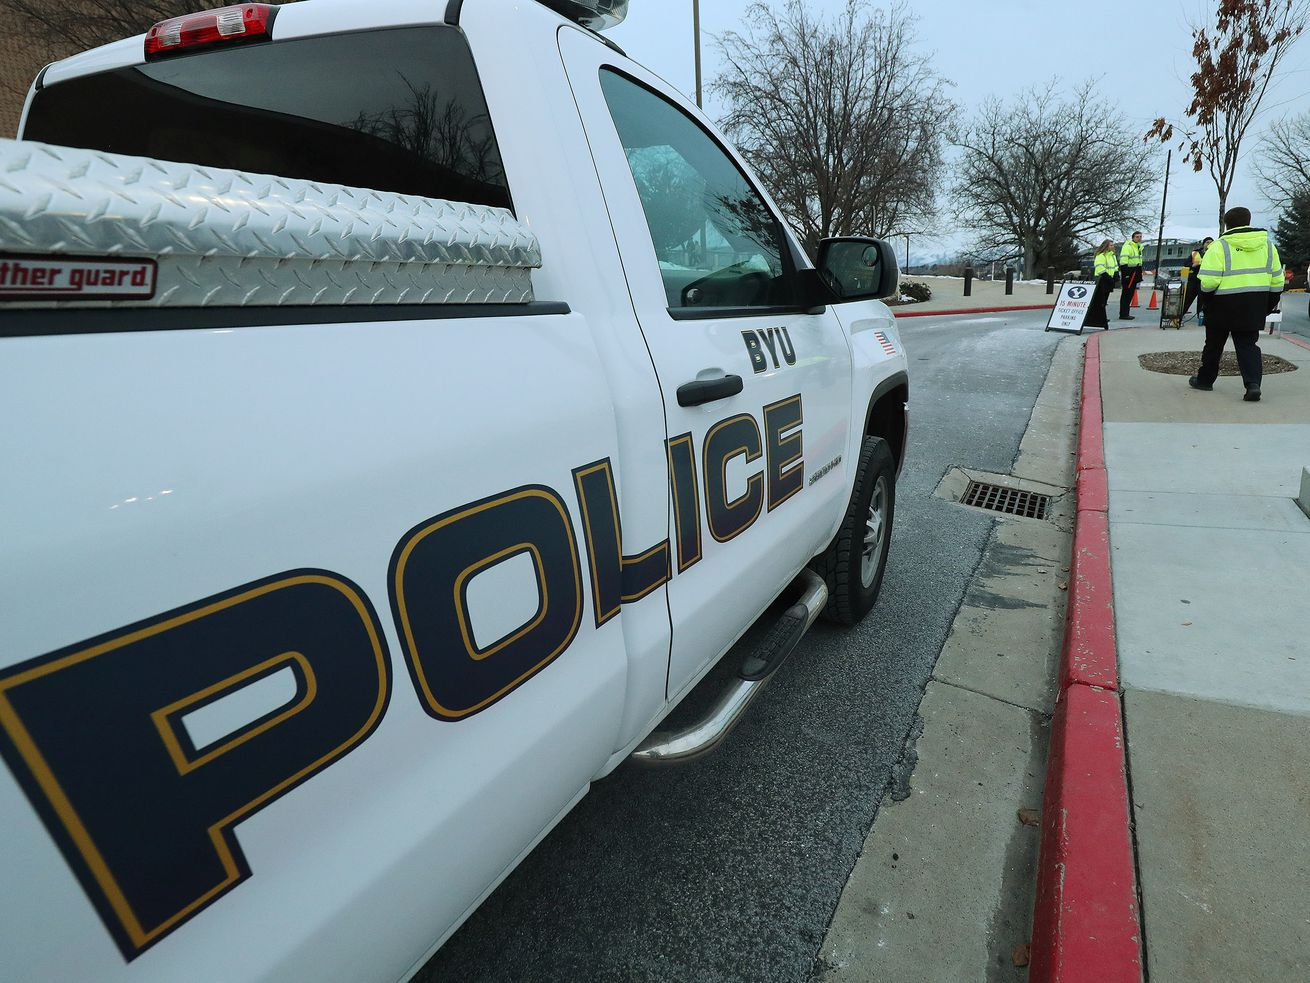 BYU didn't 'act like a police department,' state argues in certification appeal